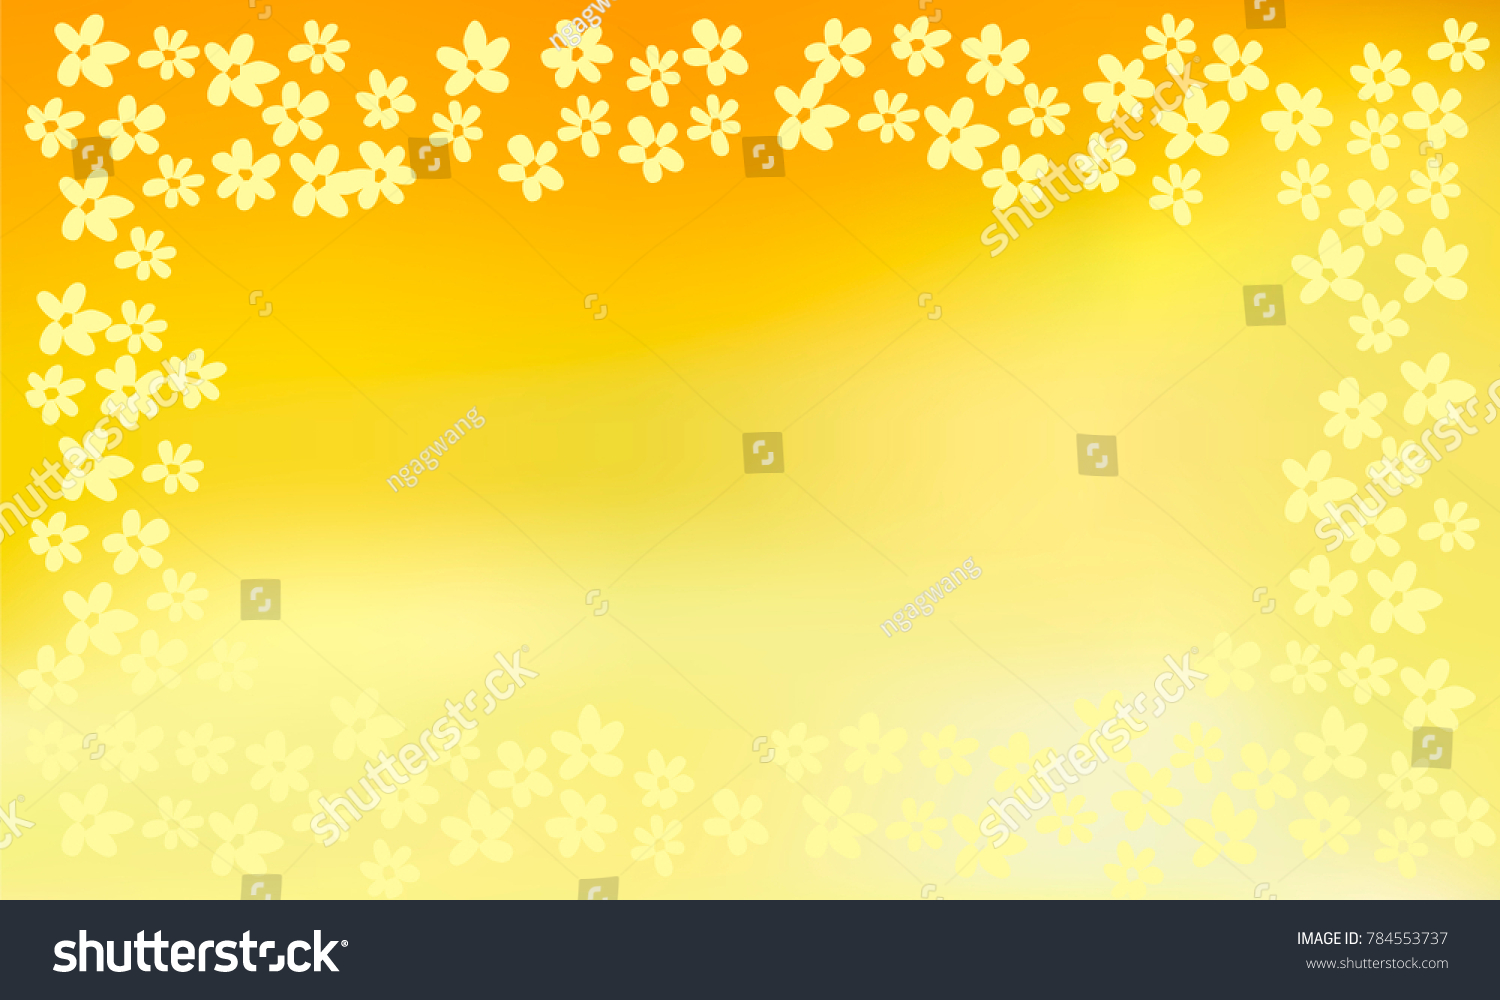 Many Small Light Yellow Flowers Empty Stock Vector 784553737